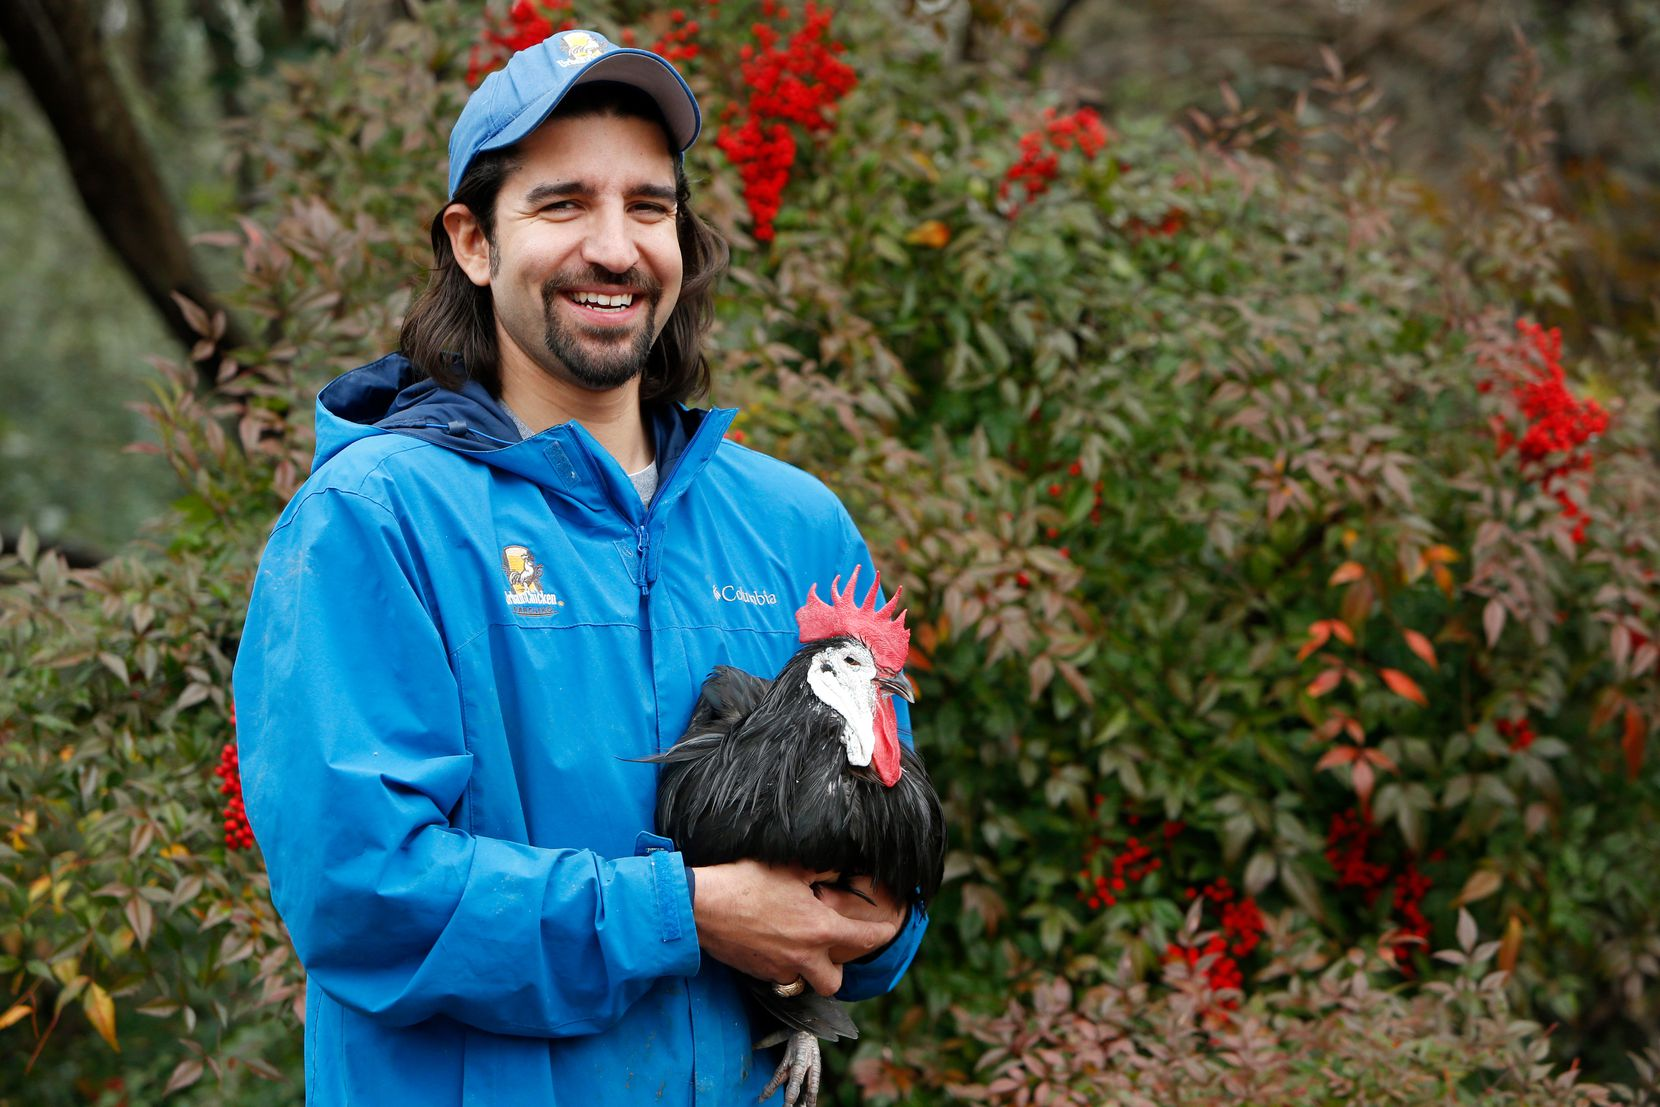 John Ramos, owner of Urban Chicken Ranching, offers consulting services, feed delivery, pet-sitting and other help for Dallasites raising hens.